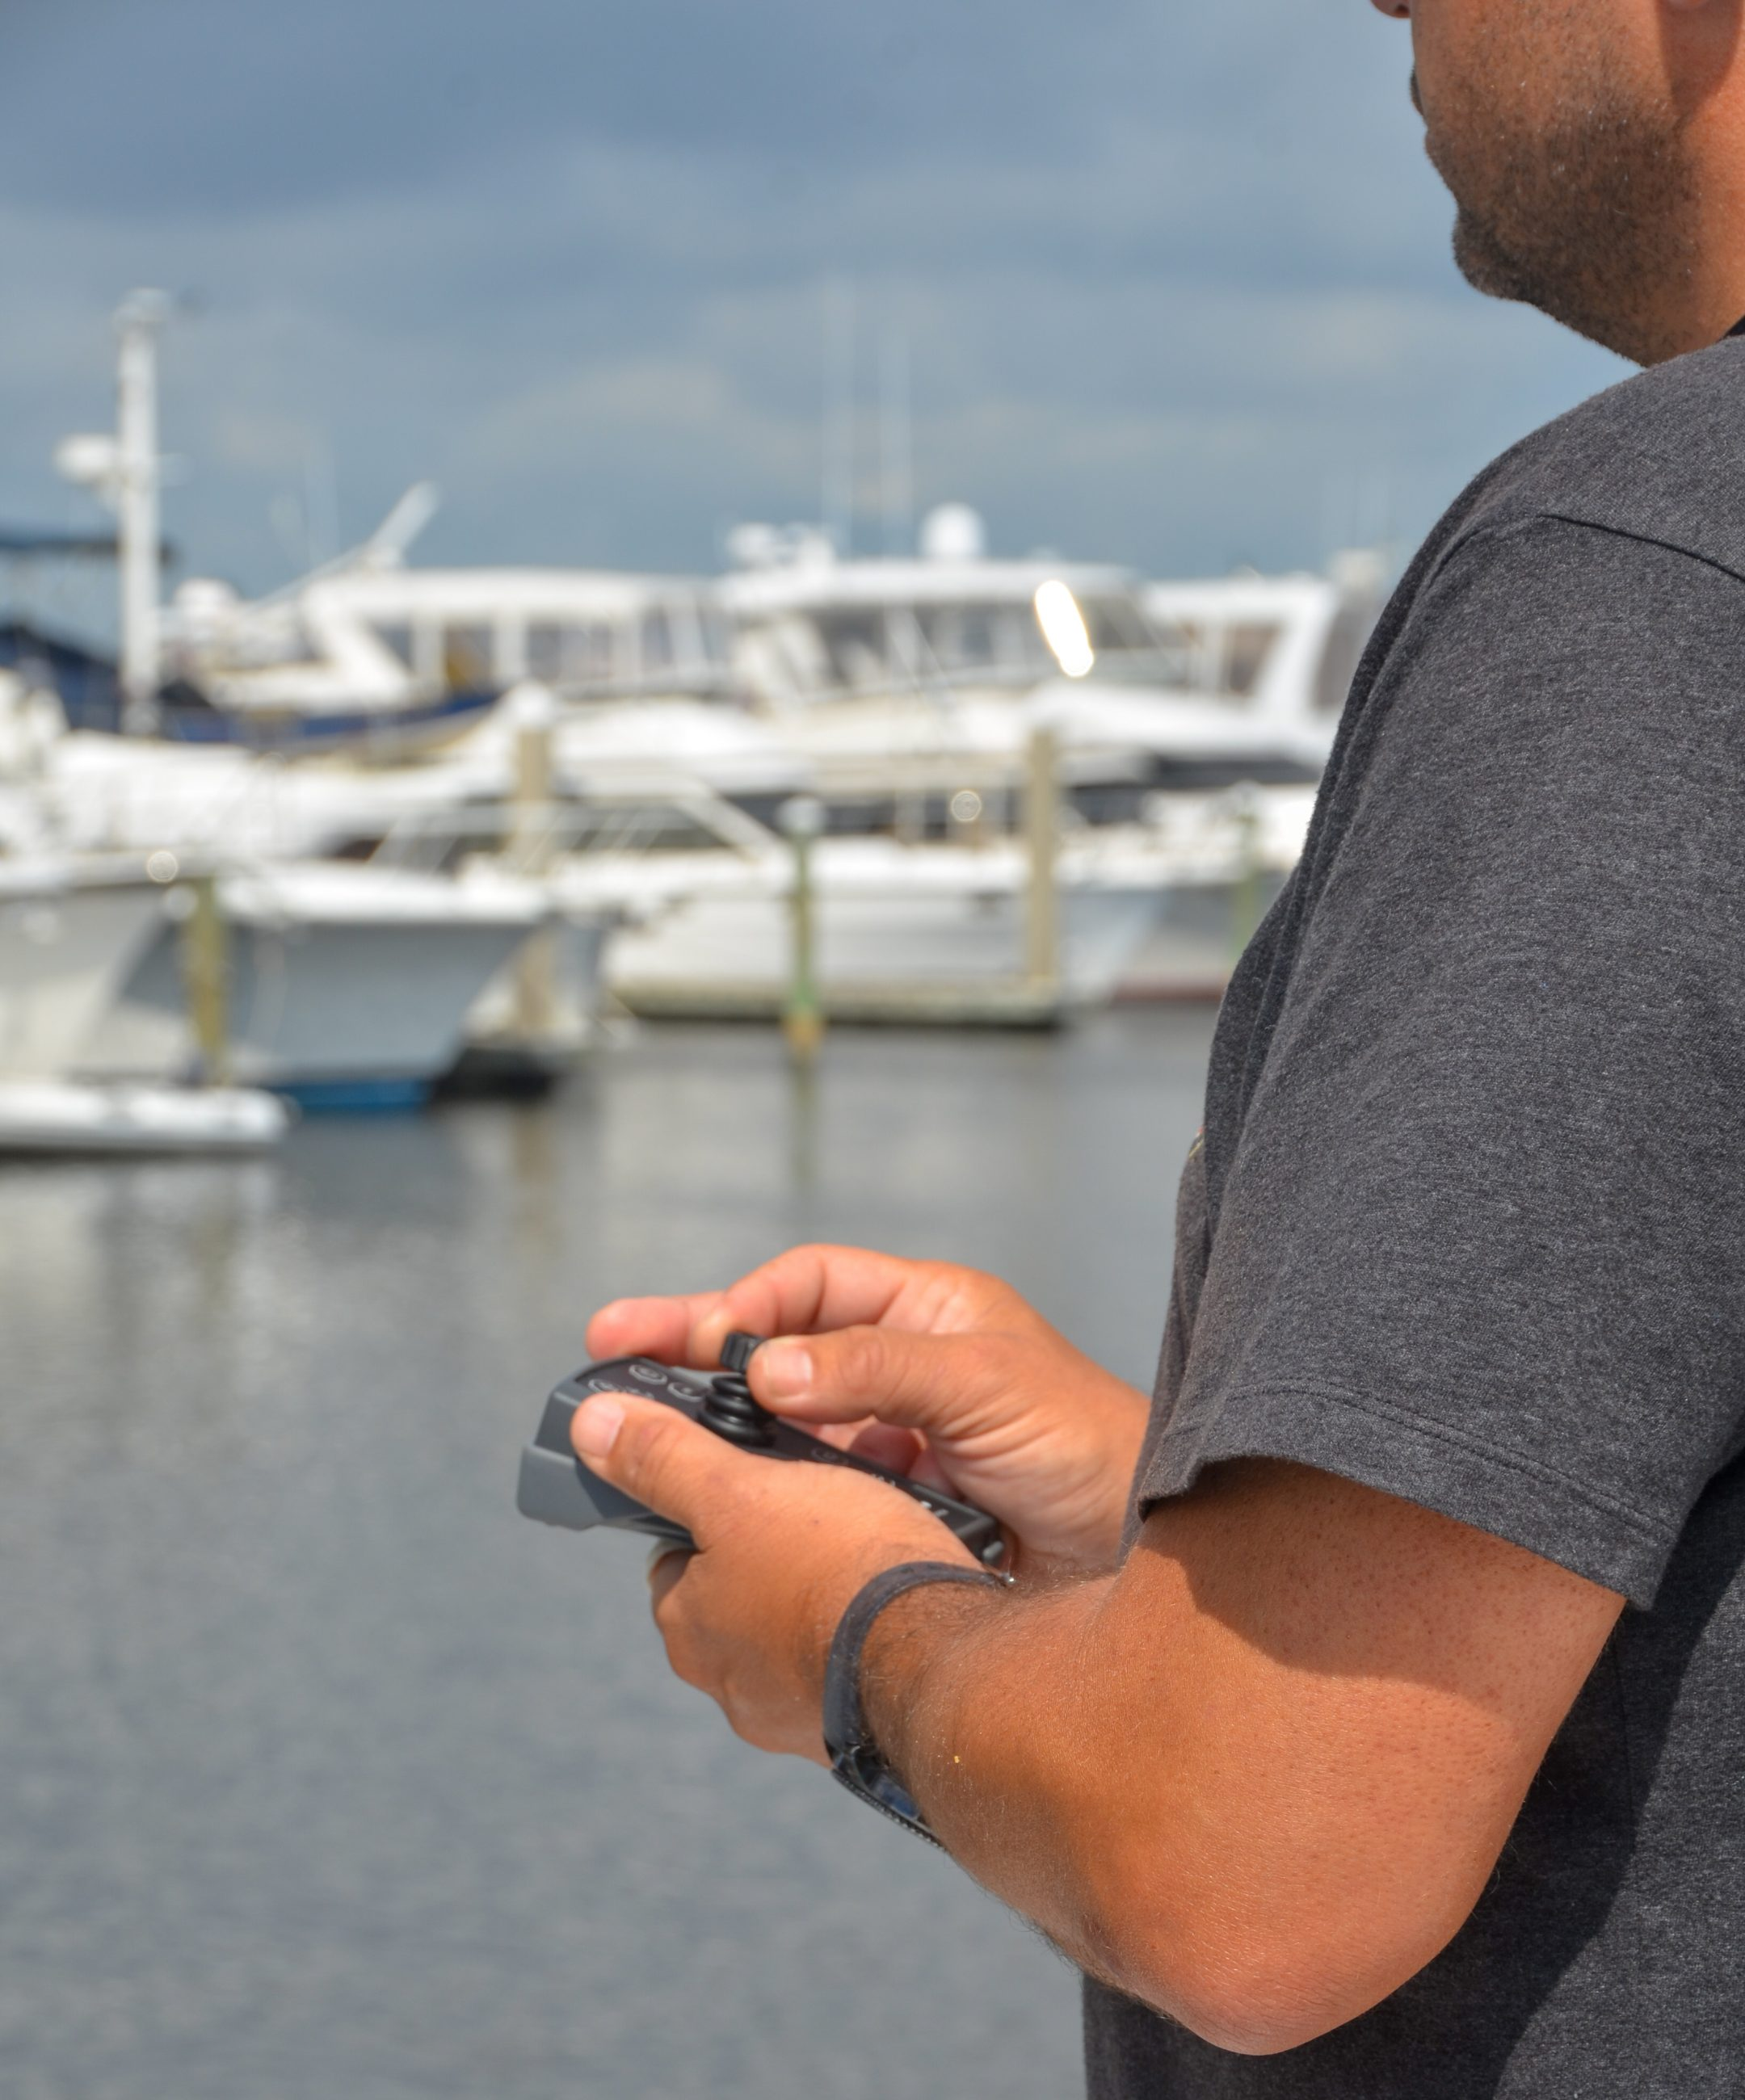 Dockmate wireless docking remote, life is easier with a